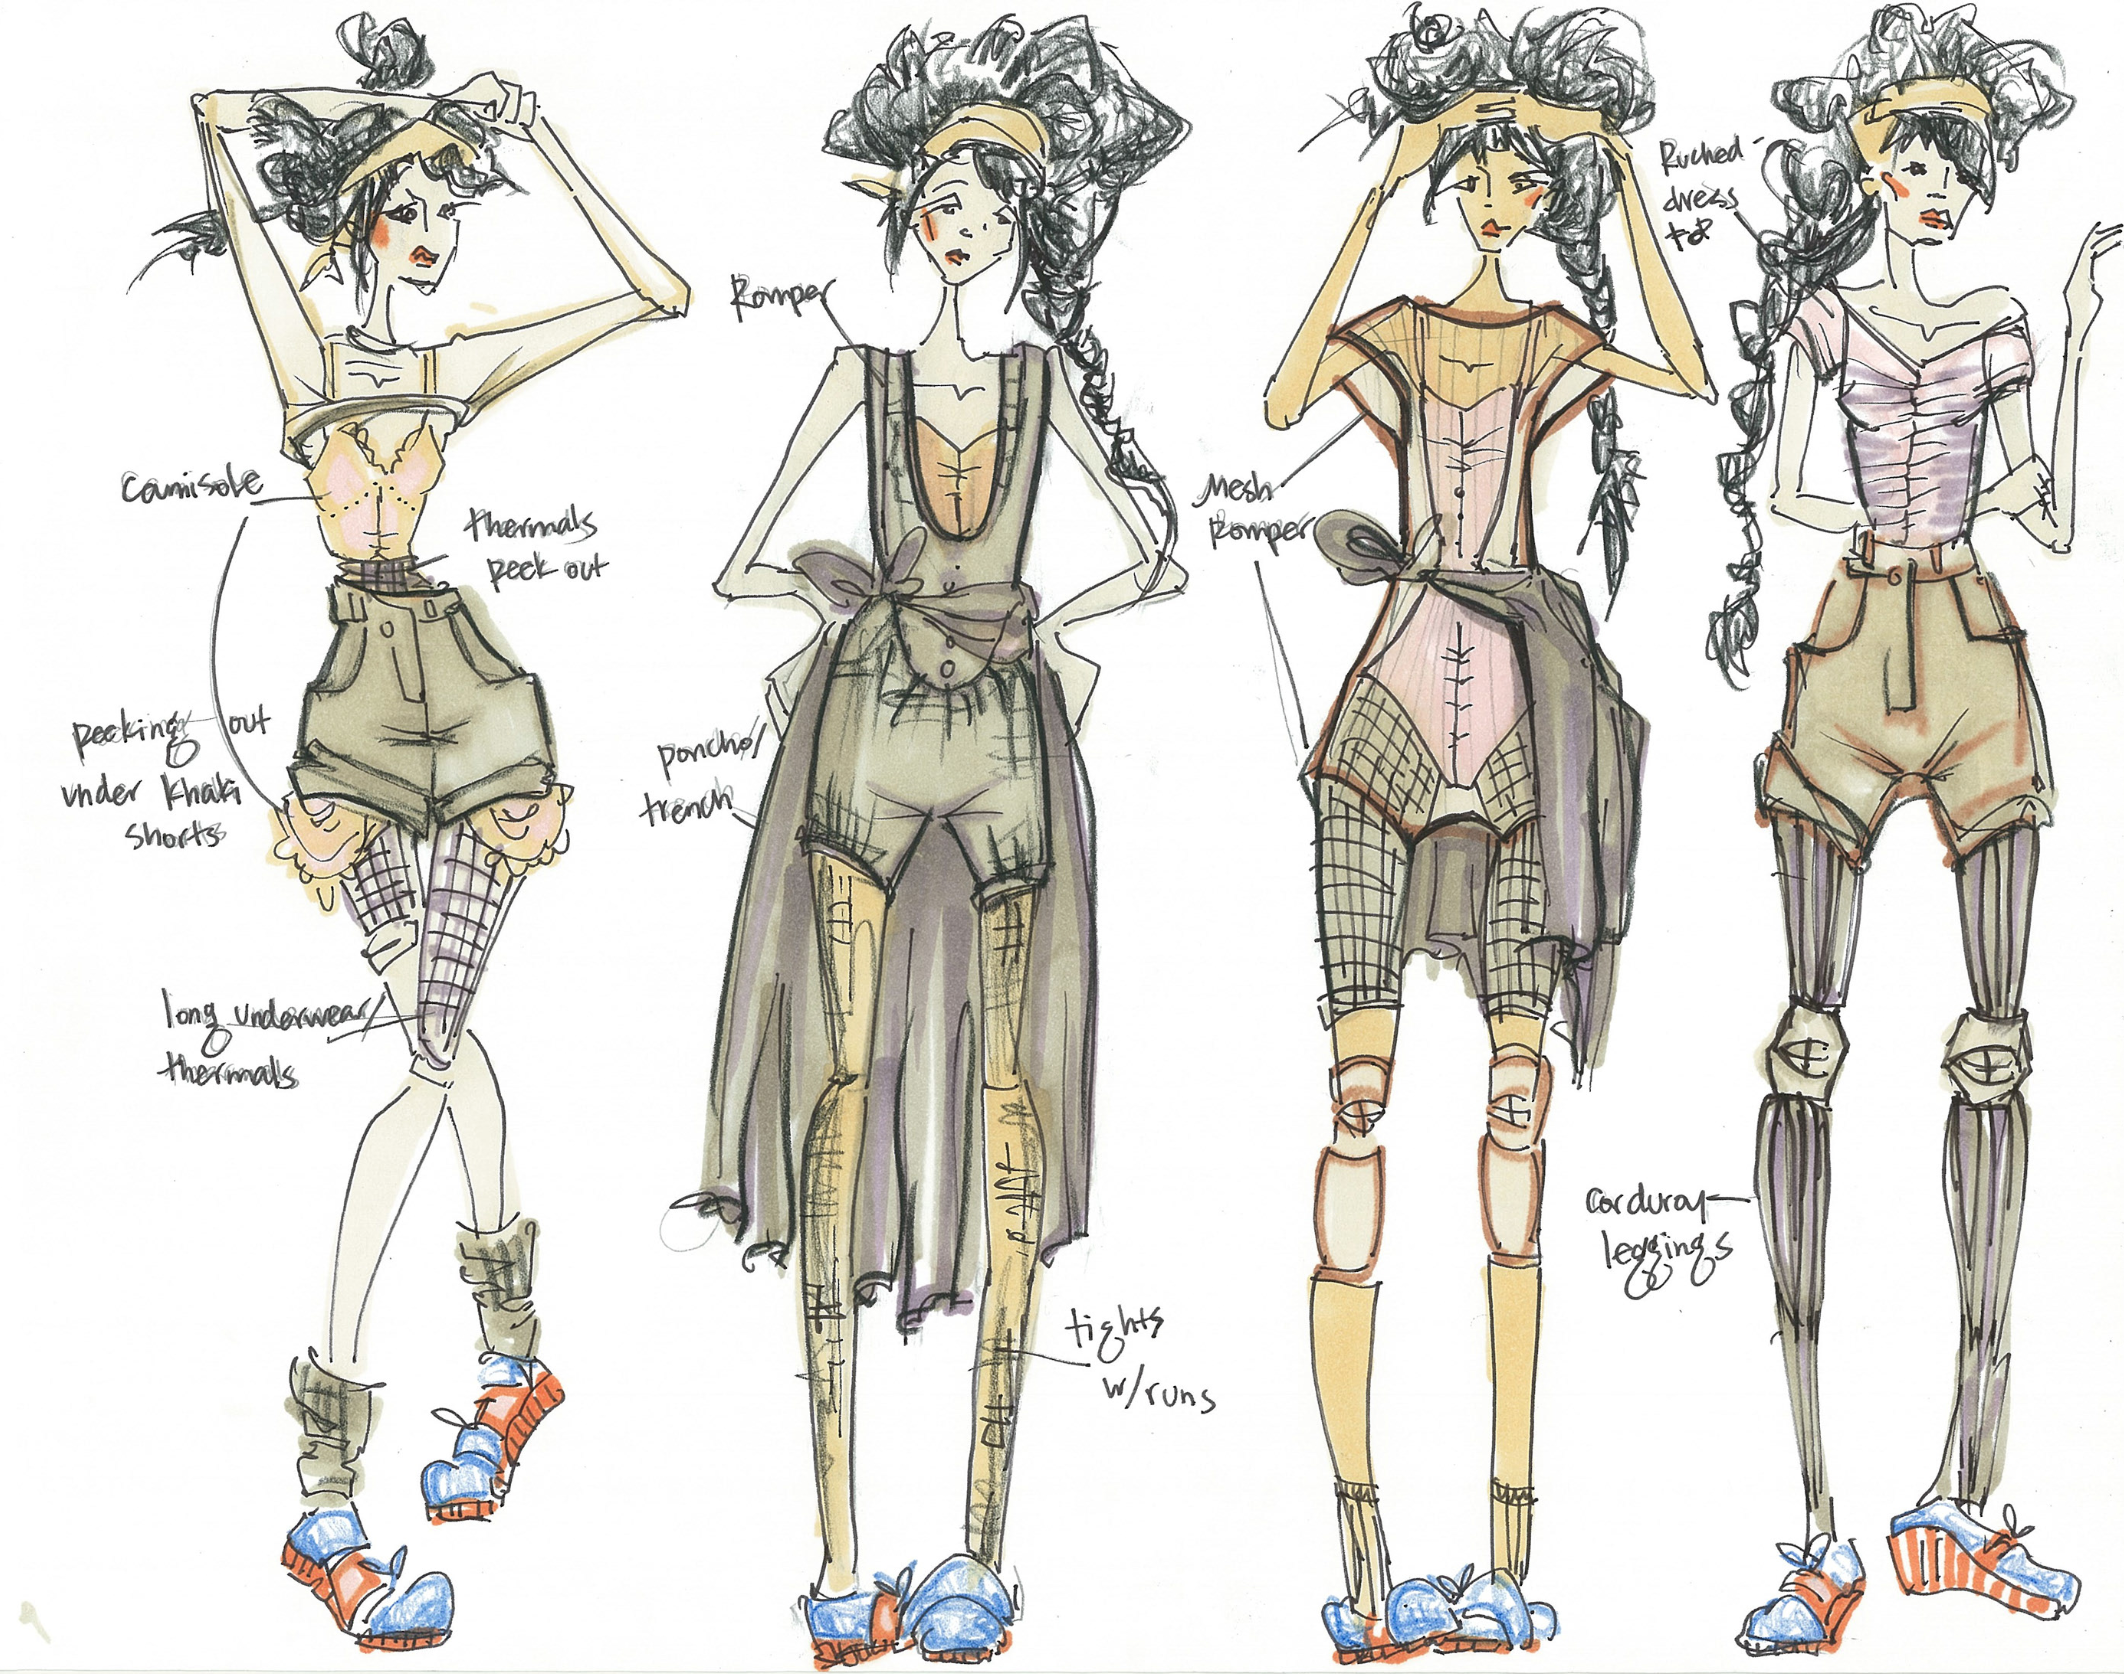 Wardrobe sketches - Rio Soul dance-inspired shoes (2014)